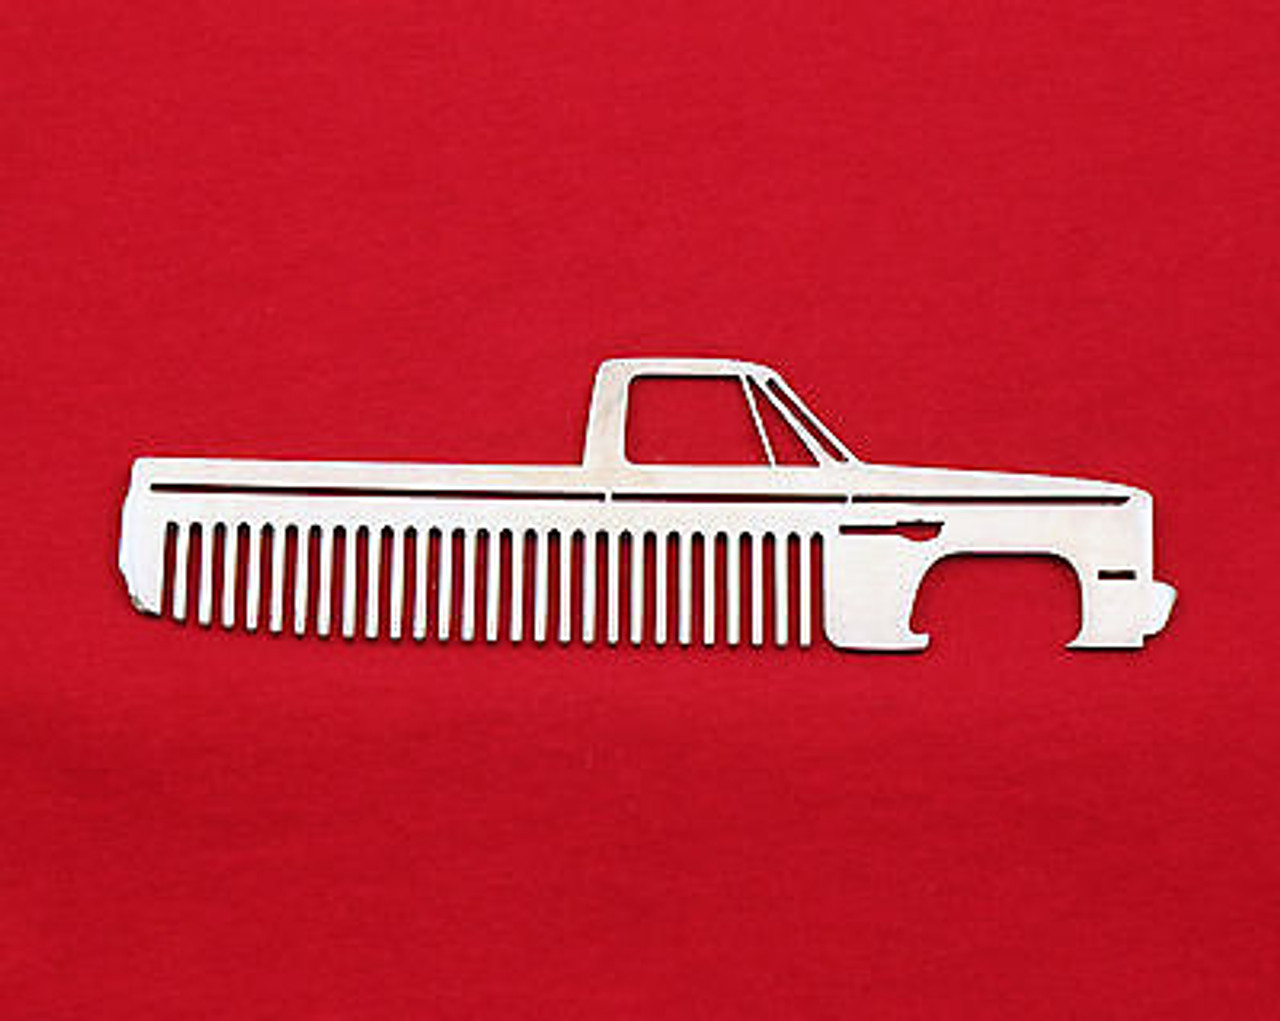 hight resolution of 73 87 chevy truck brushed stainless steel metal trim beard hair mustache comb